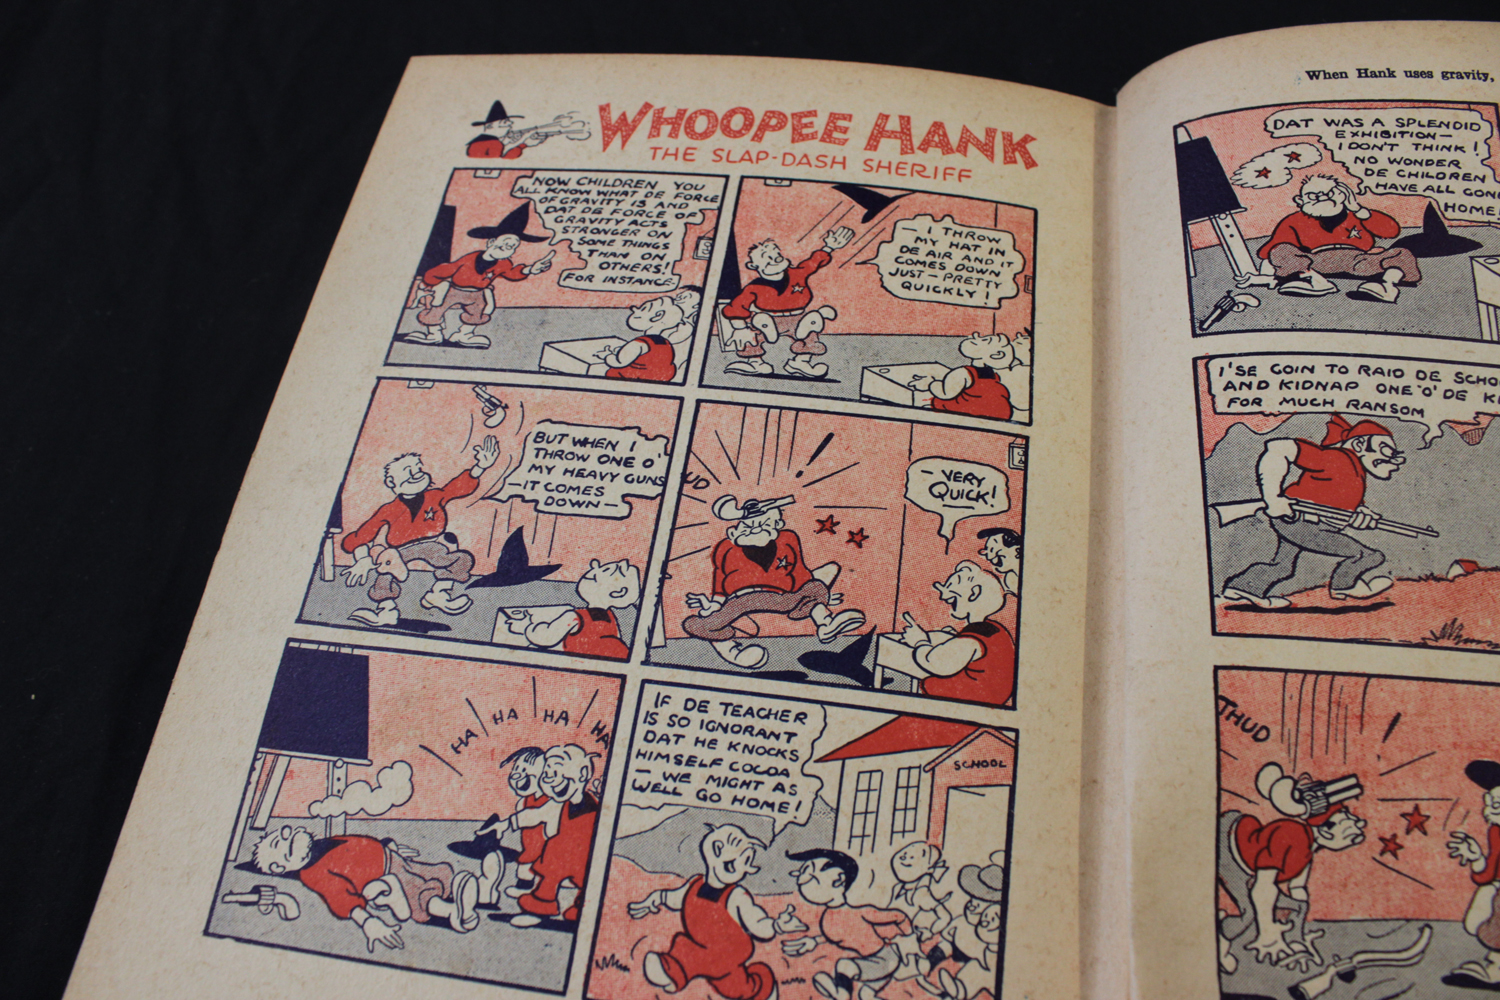 THE BEANO BOOK [No 1 Annual for 1940], London, Manchester and Dundee, D C Thomson & Co, [1939], 128p - Image 12 of 16